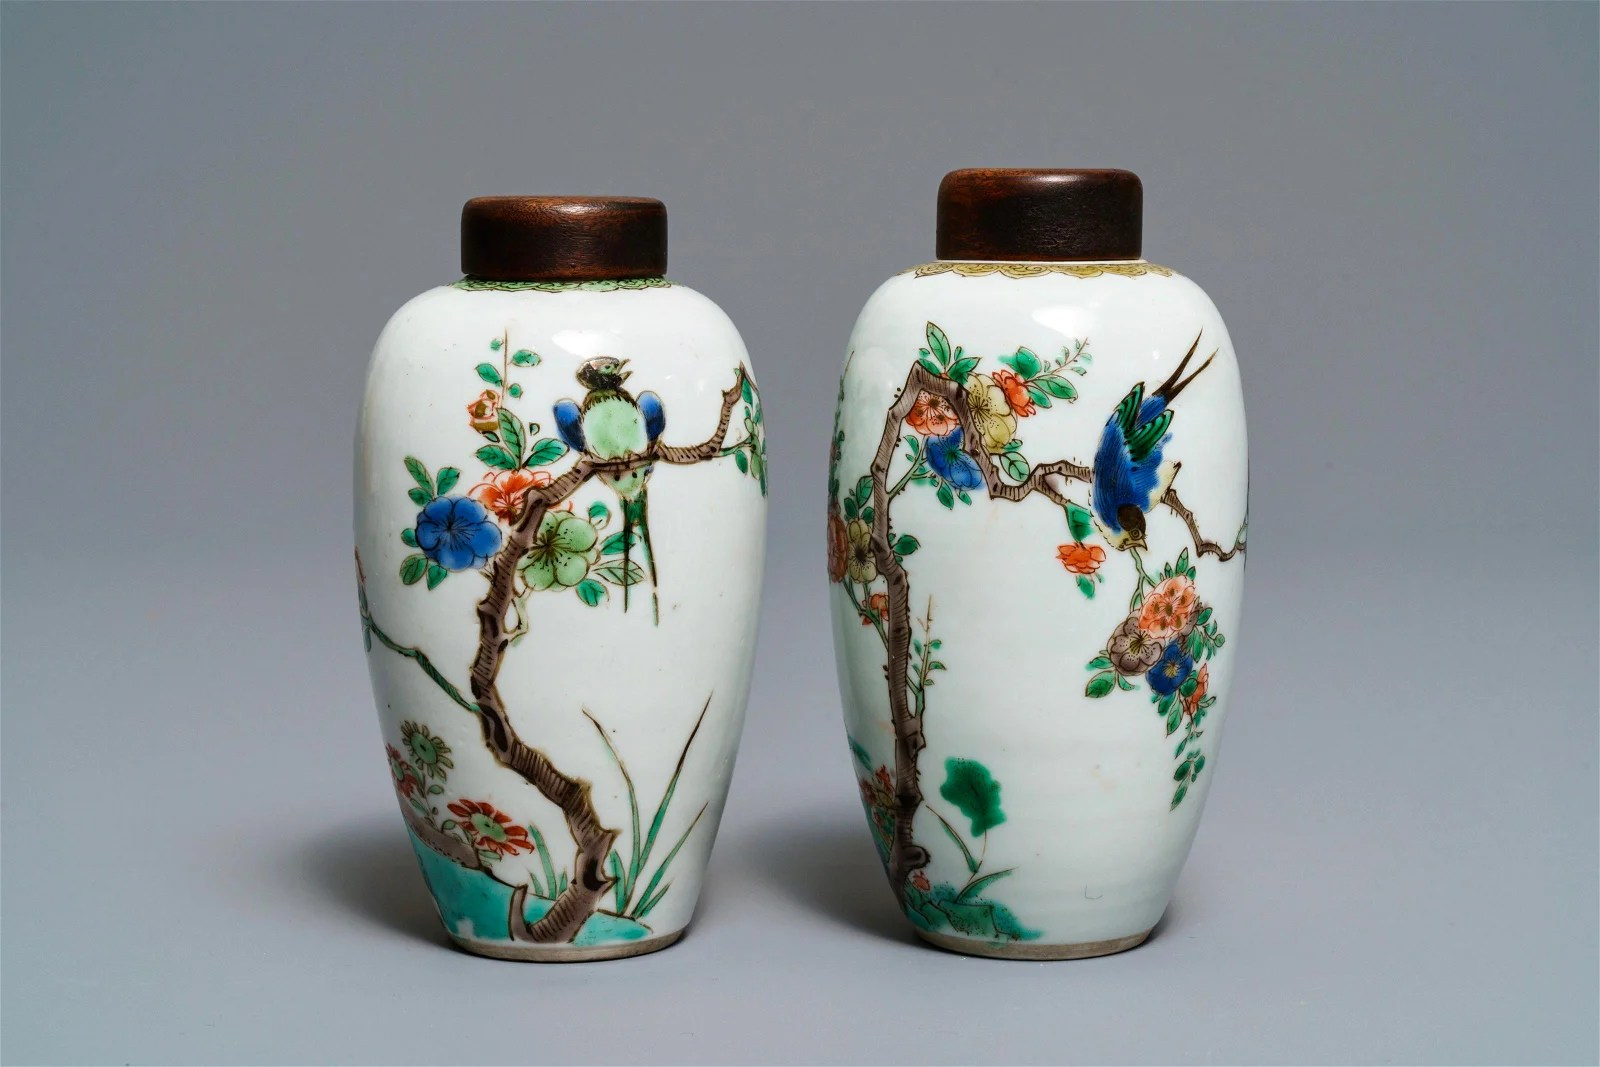 Two Chinese famille verte vases with birds on